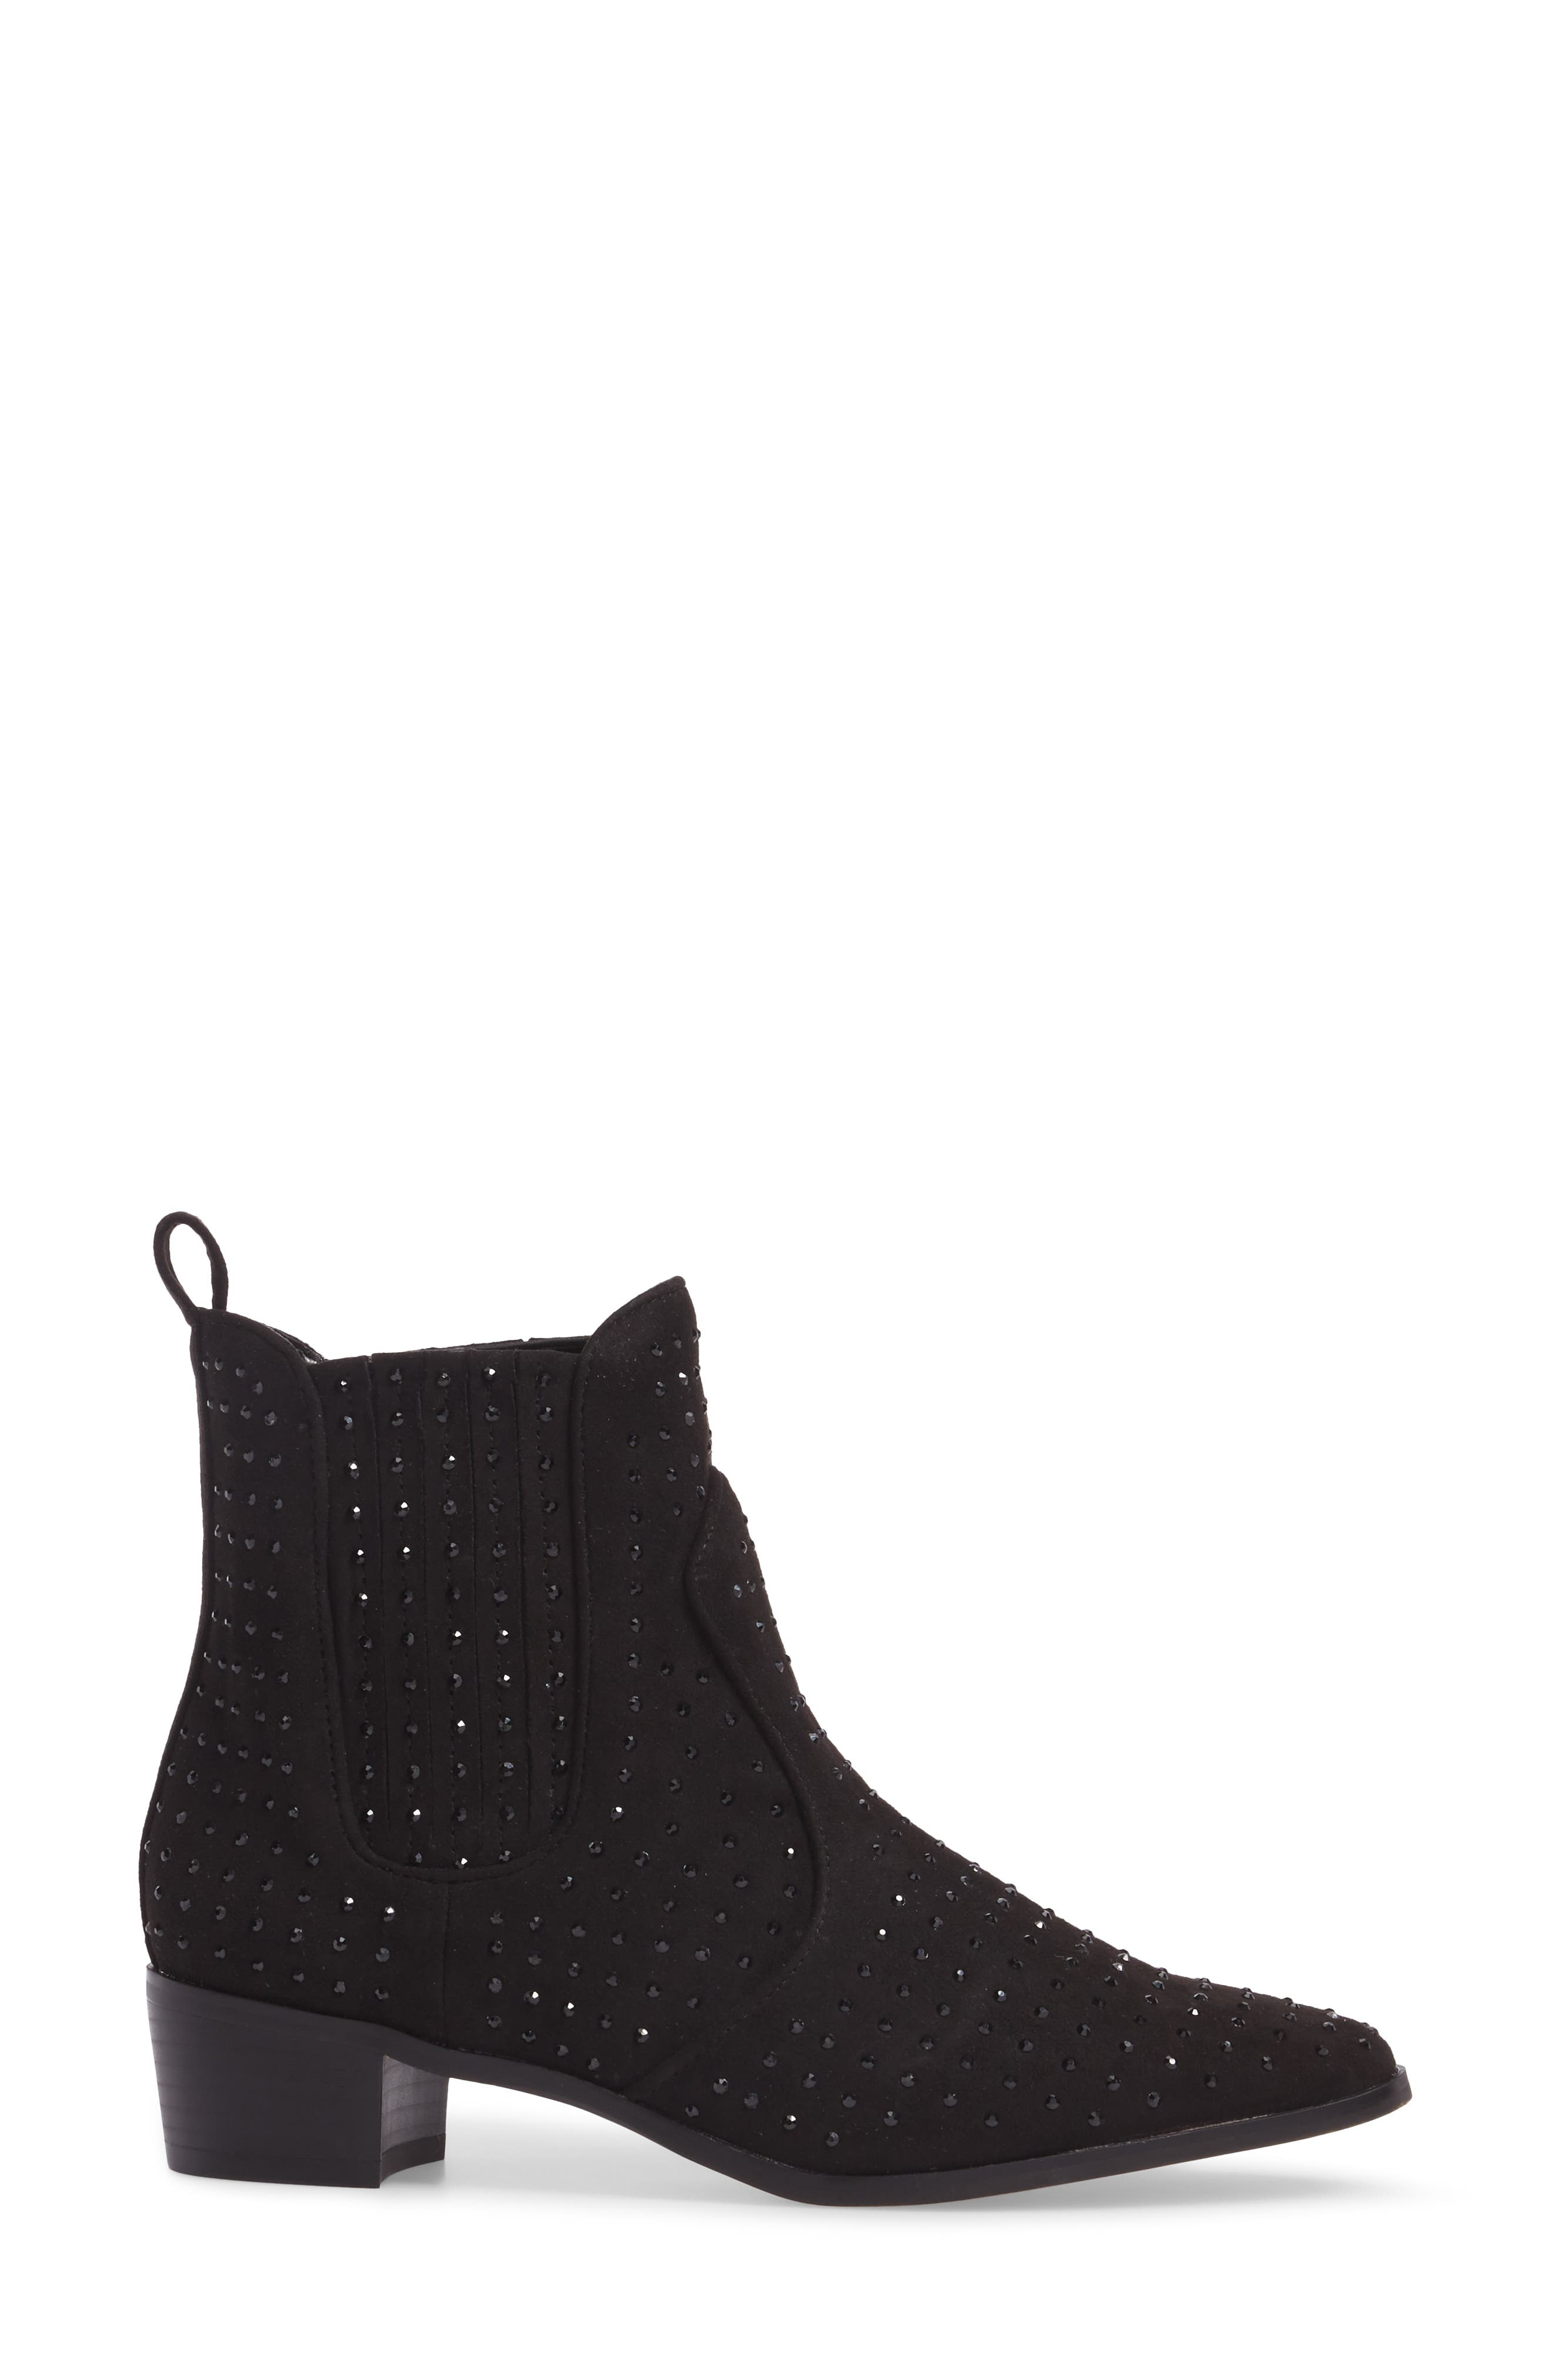 Ryan Bootie,                             Alternate thumbnail 3, color,                             Black Suede